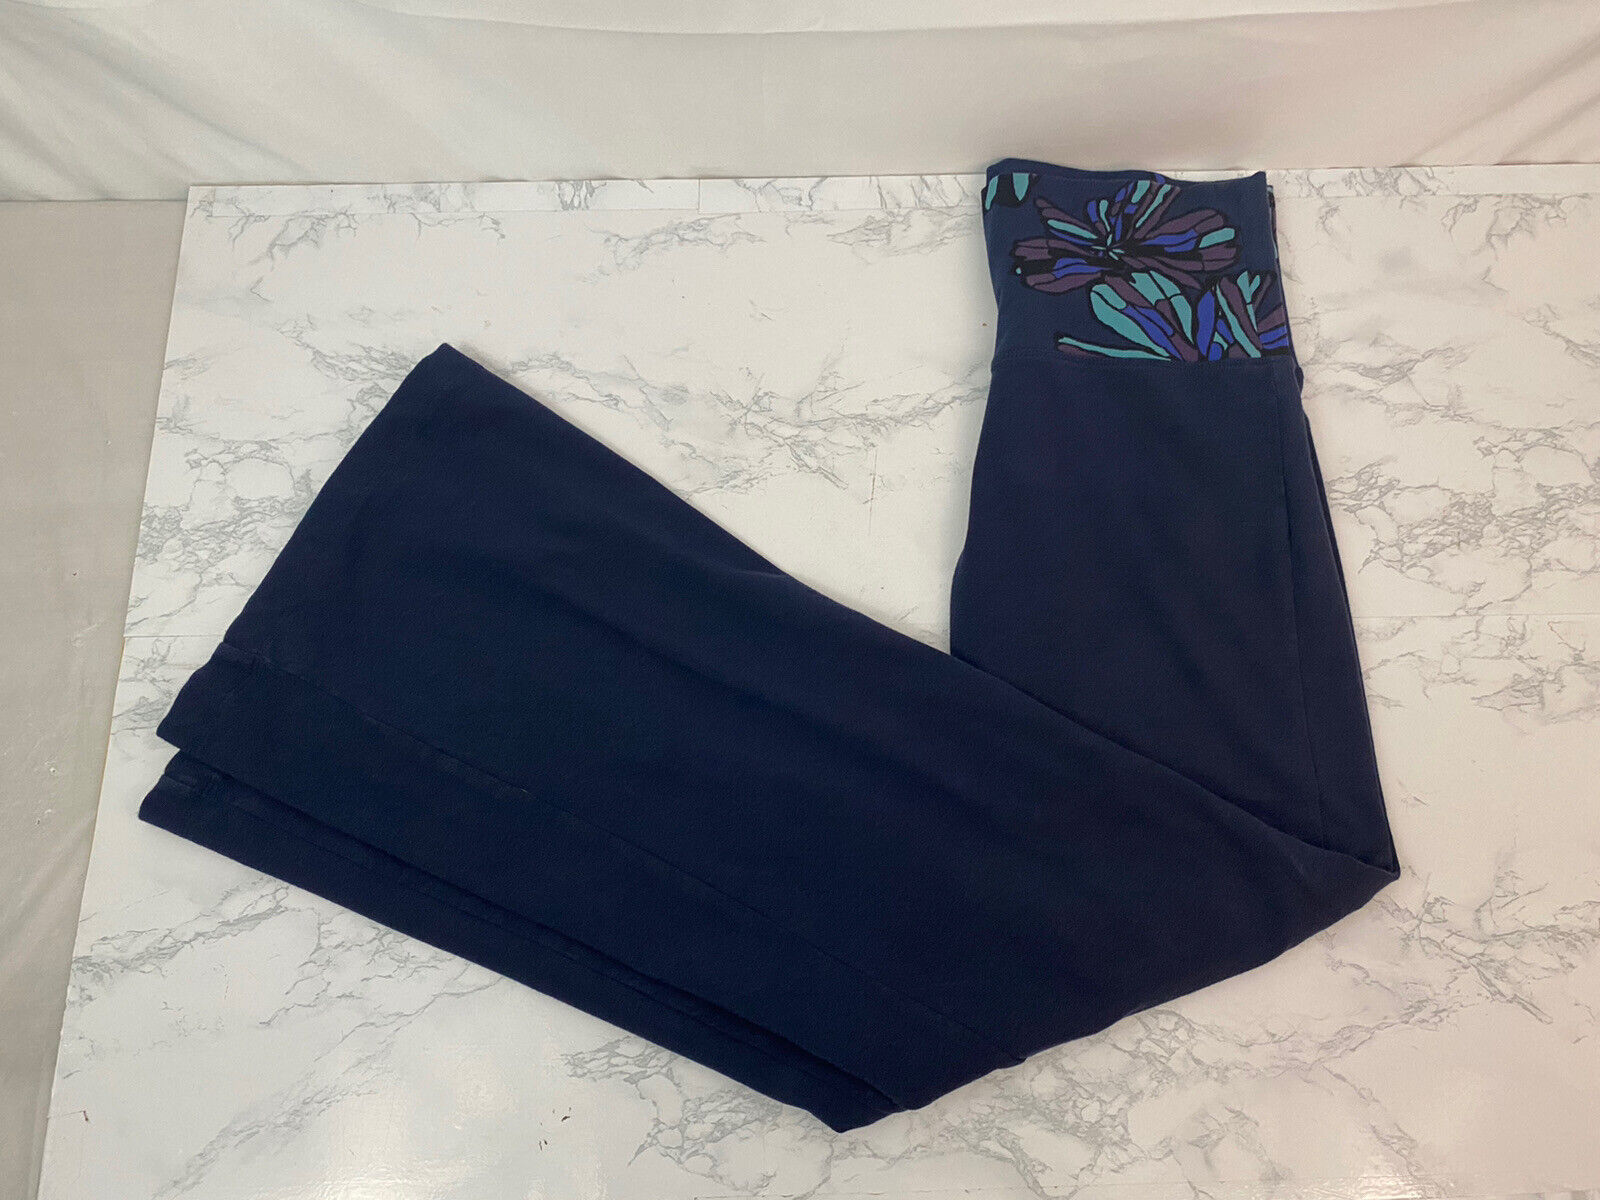 OLD NAVY ON Pull On Yoga Pants Womens S Blue Floral High Waist Flare Leg K1